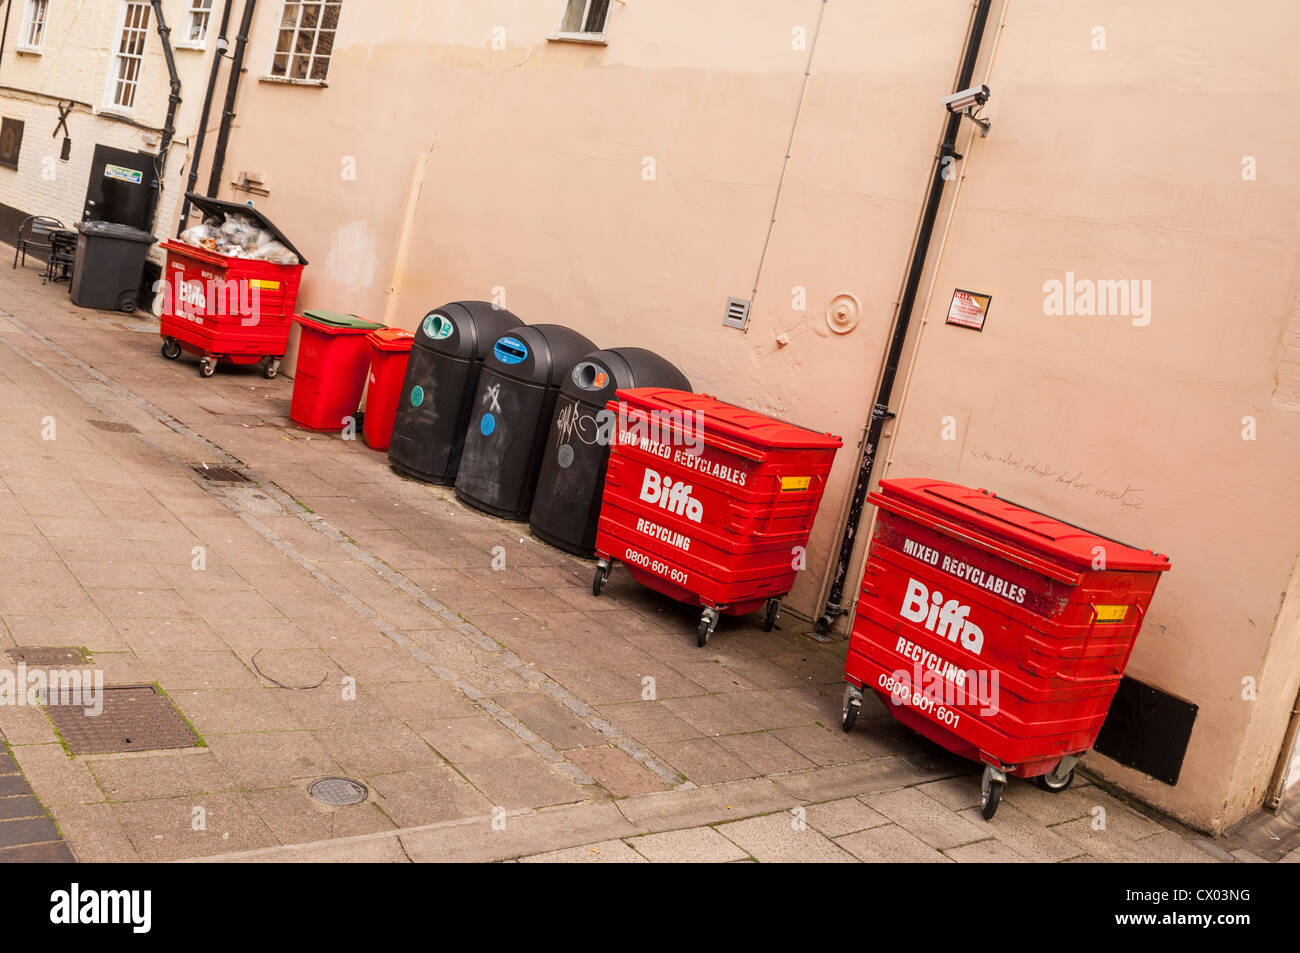 A selection of recycling and rubbish bins in the Uk - Stock Image